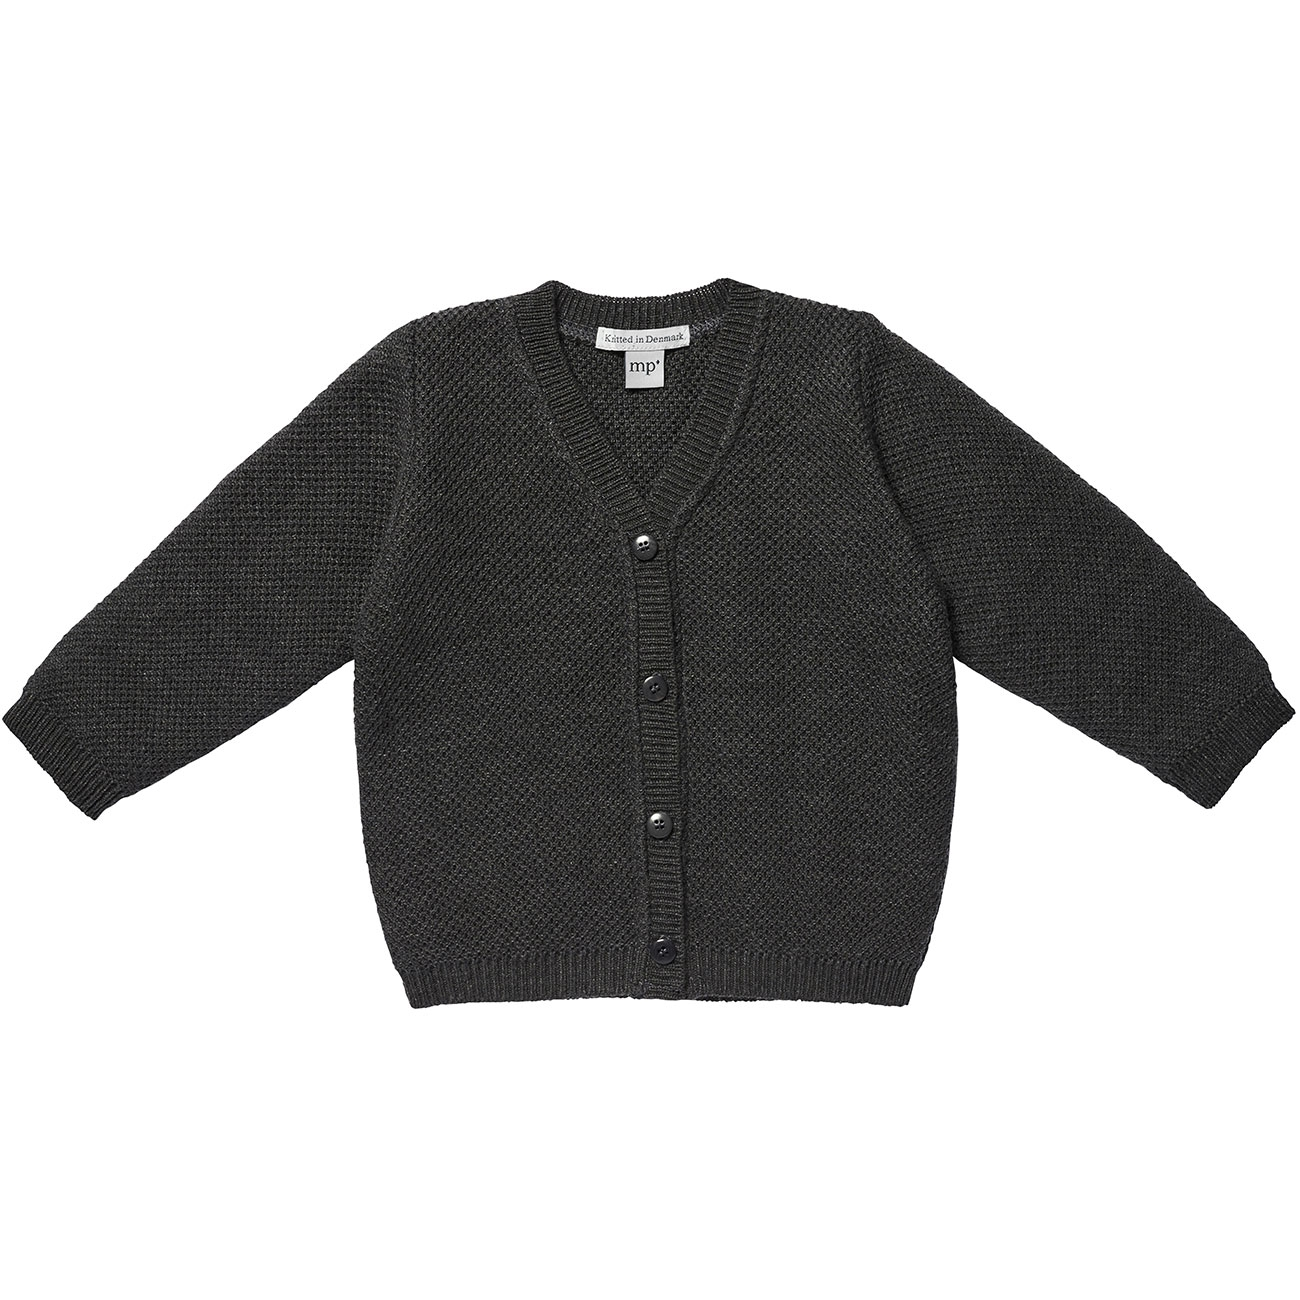 MP Dark Grey Melange Texas Cardigan